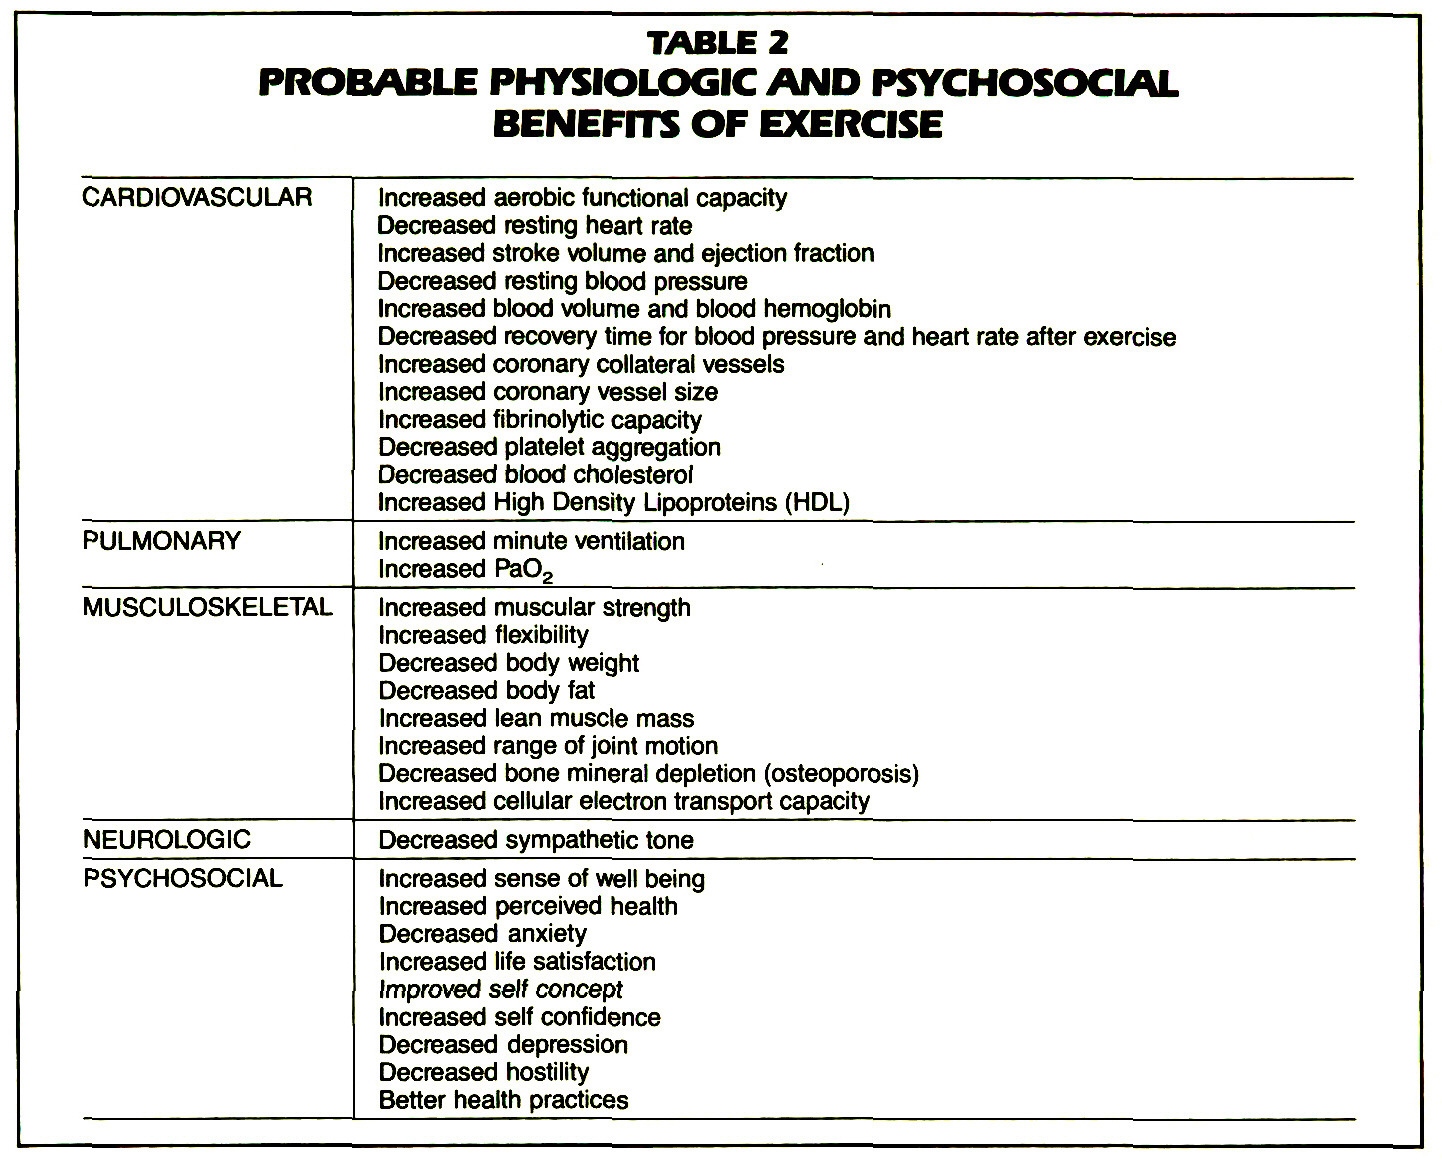 TABLE 2PROBABLE PHYSIOLOGIC AND PSYCHOSOCIAL BENEFITS OF EXERCISE